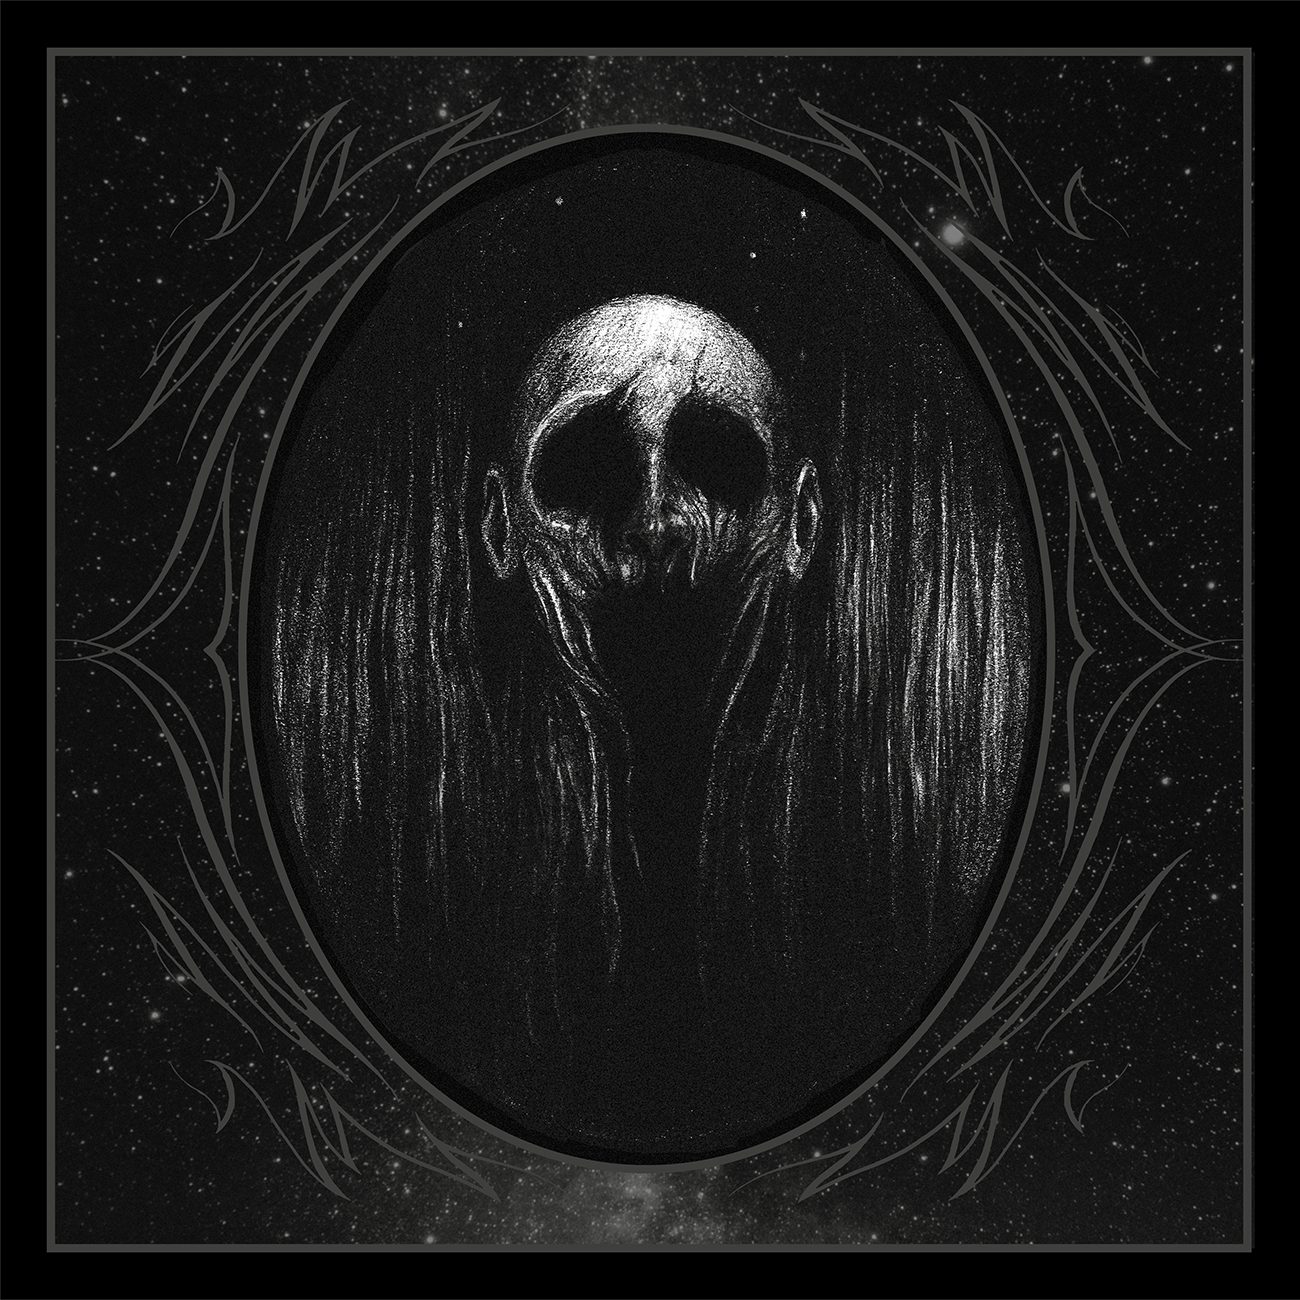 Celestial Bands: Veiled - Black Celestial Orbs Review